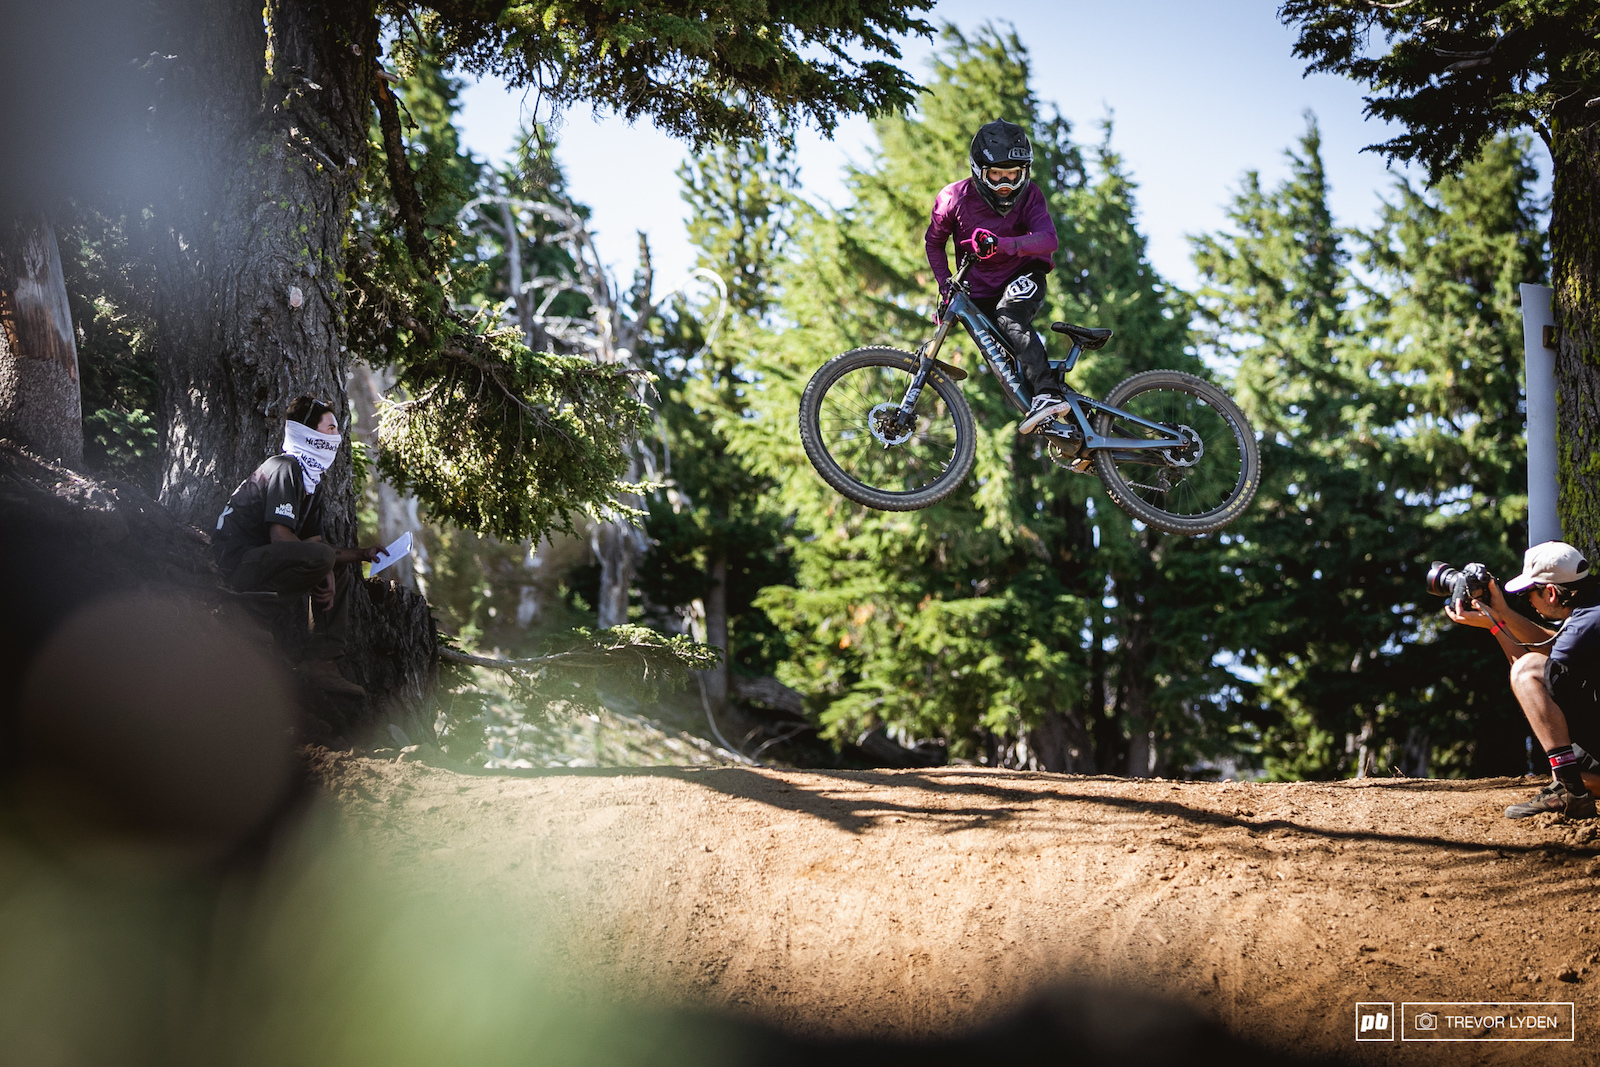 Brooke Anderson a young Portland rider is already making a name for herself at just 14 years old. Watching her ride it s no wonder why.